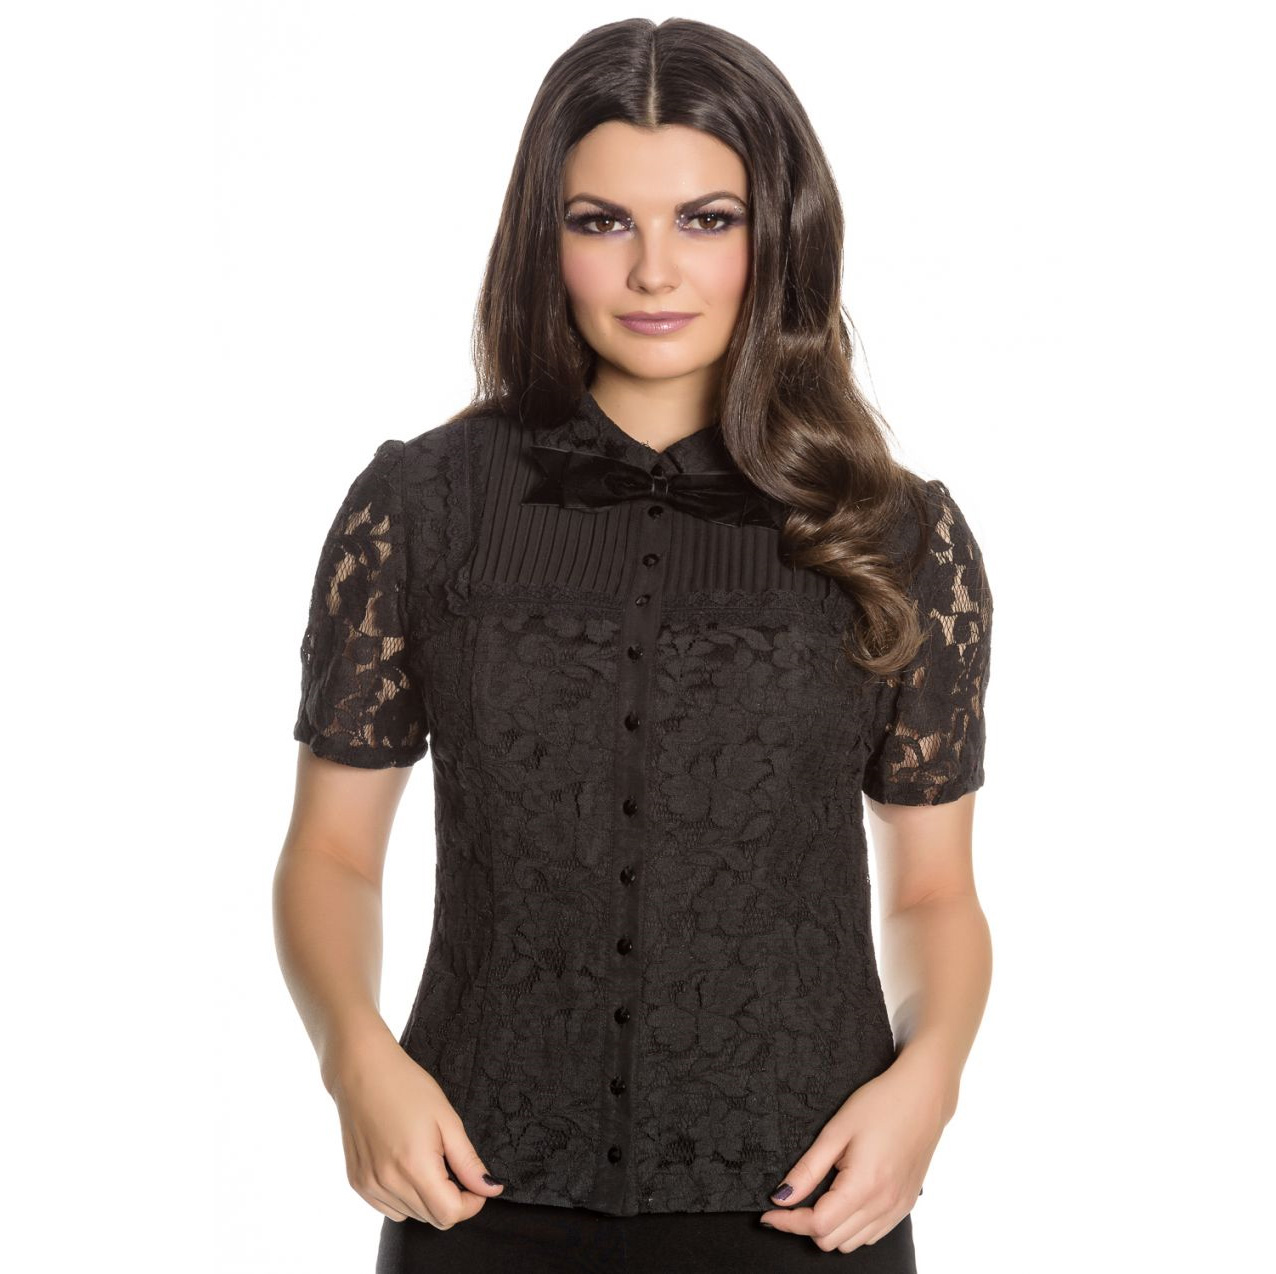 Hell-Bunny-Spin-Doctor-Vampire-Gothic-Shirt-Top-ROWENA-Lace-Blouse-All-Sizes Indexbild 7